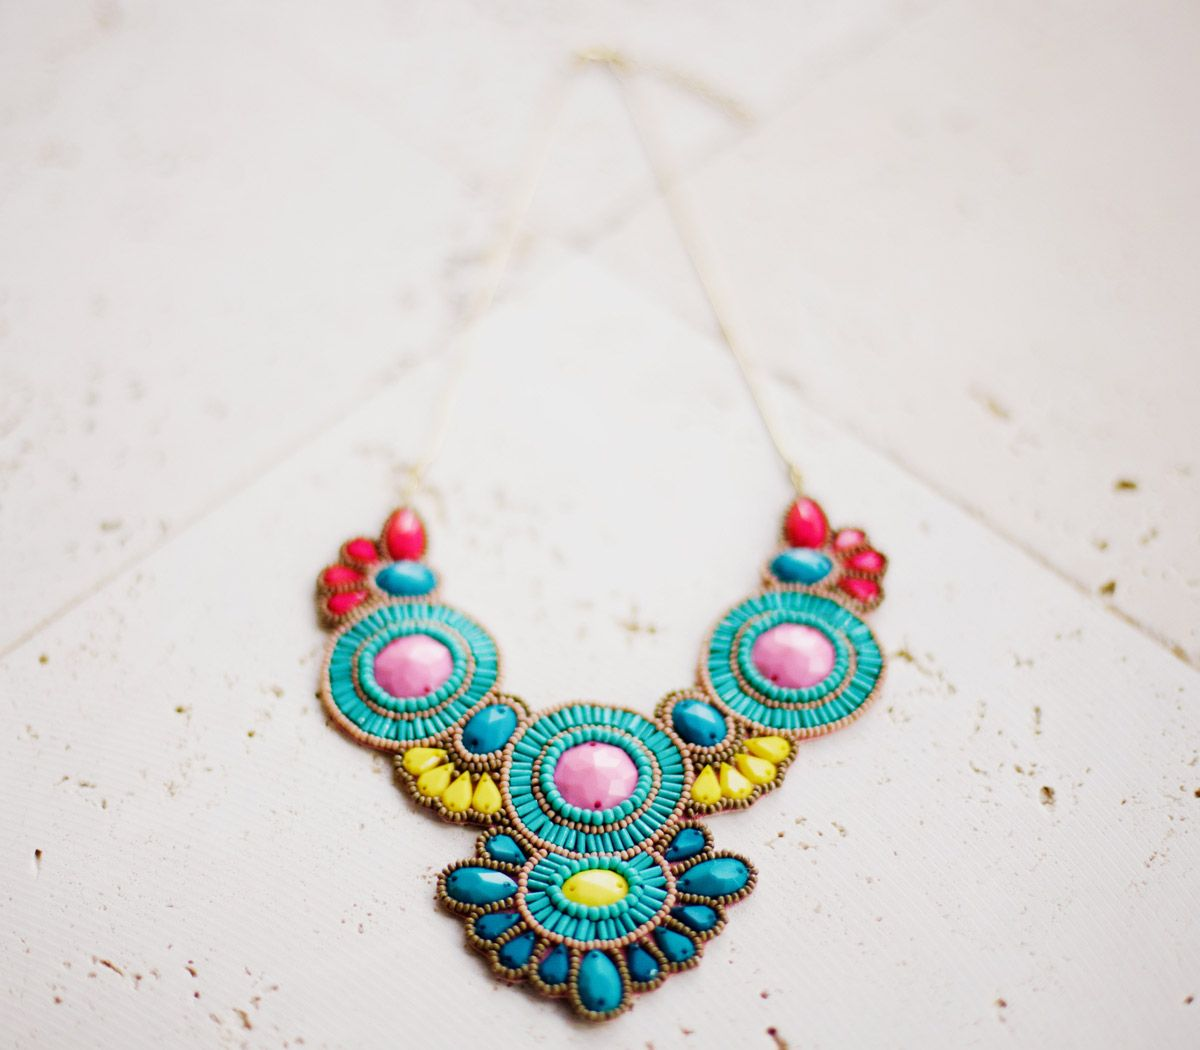 Amari Necklace From Trading Hope